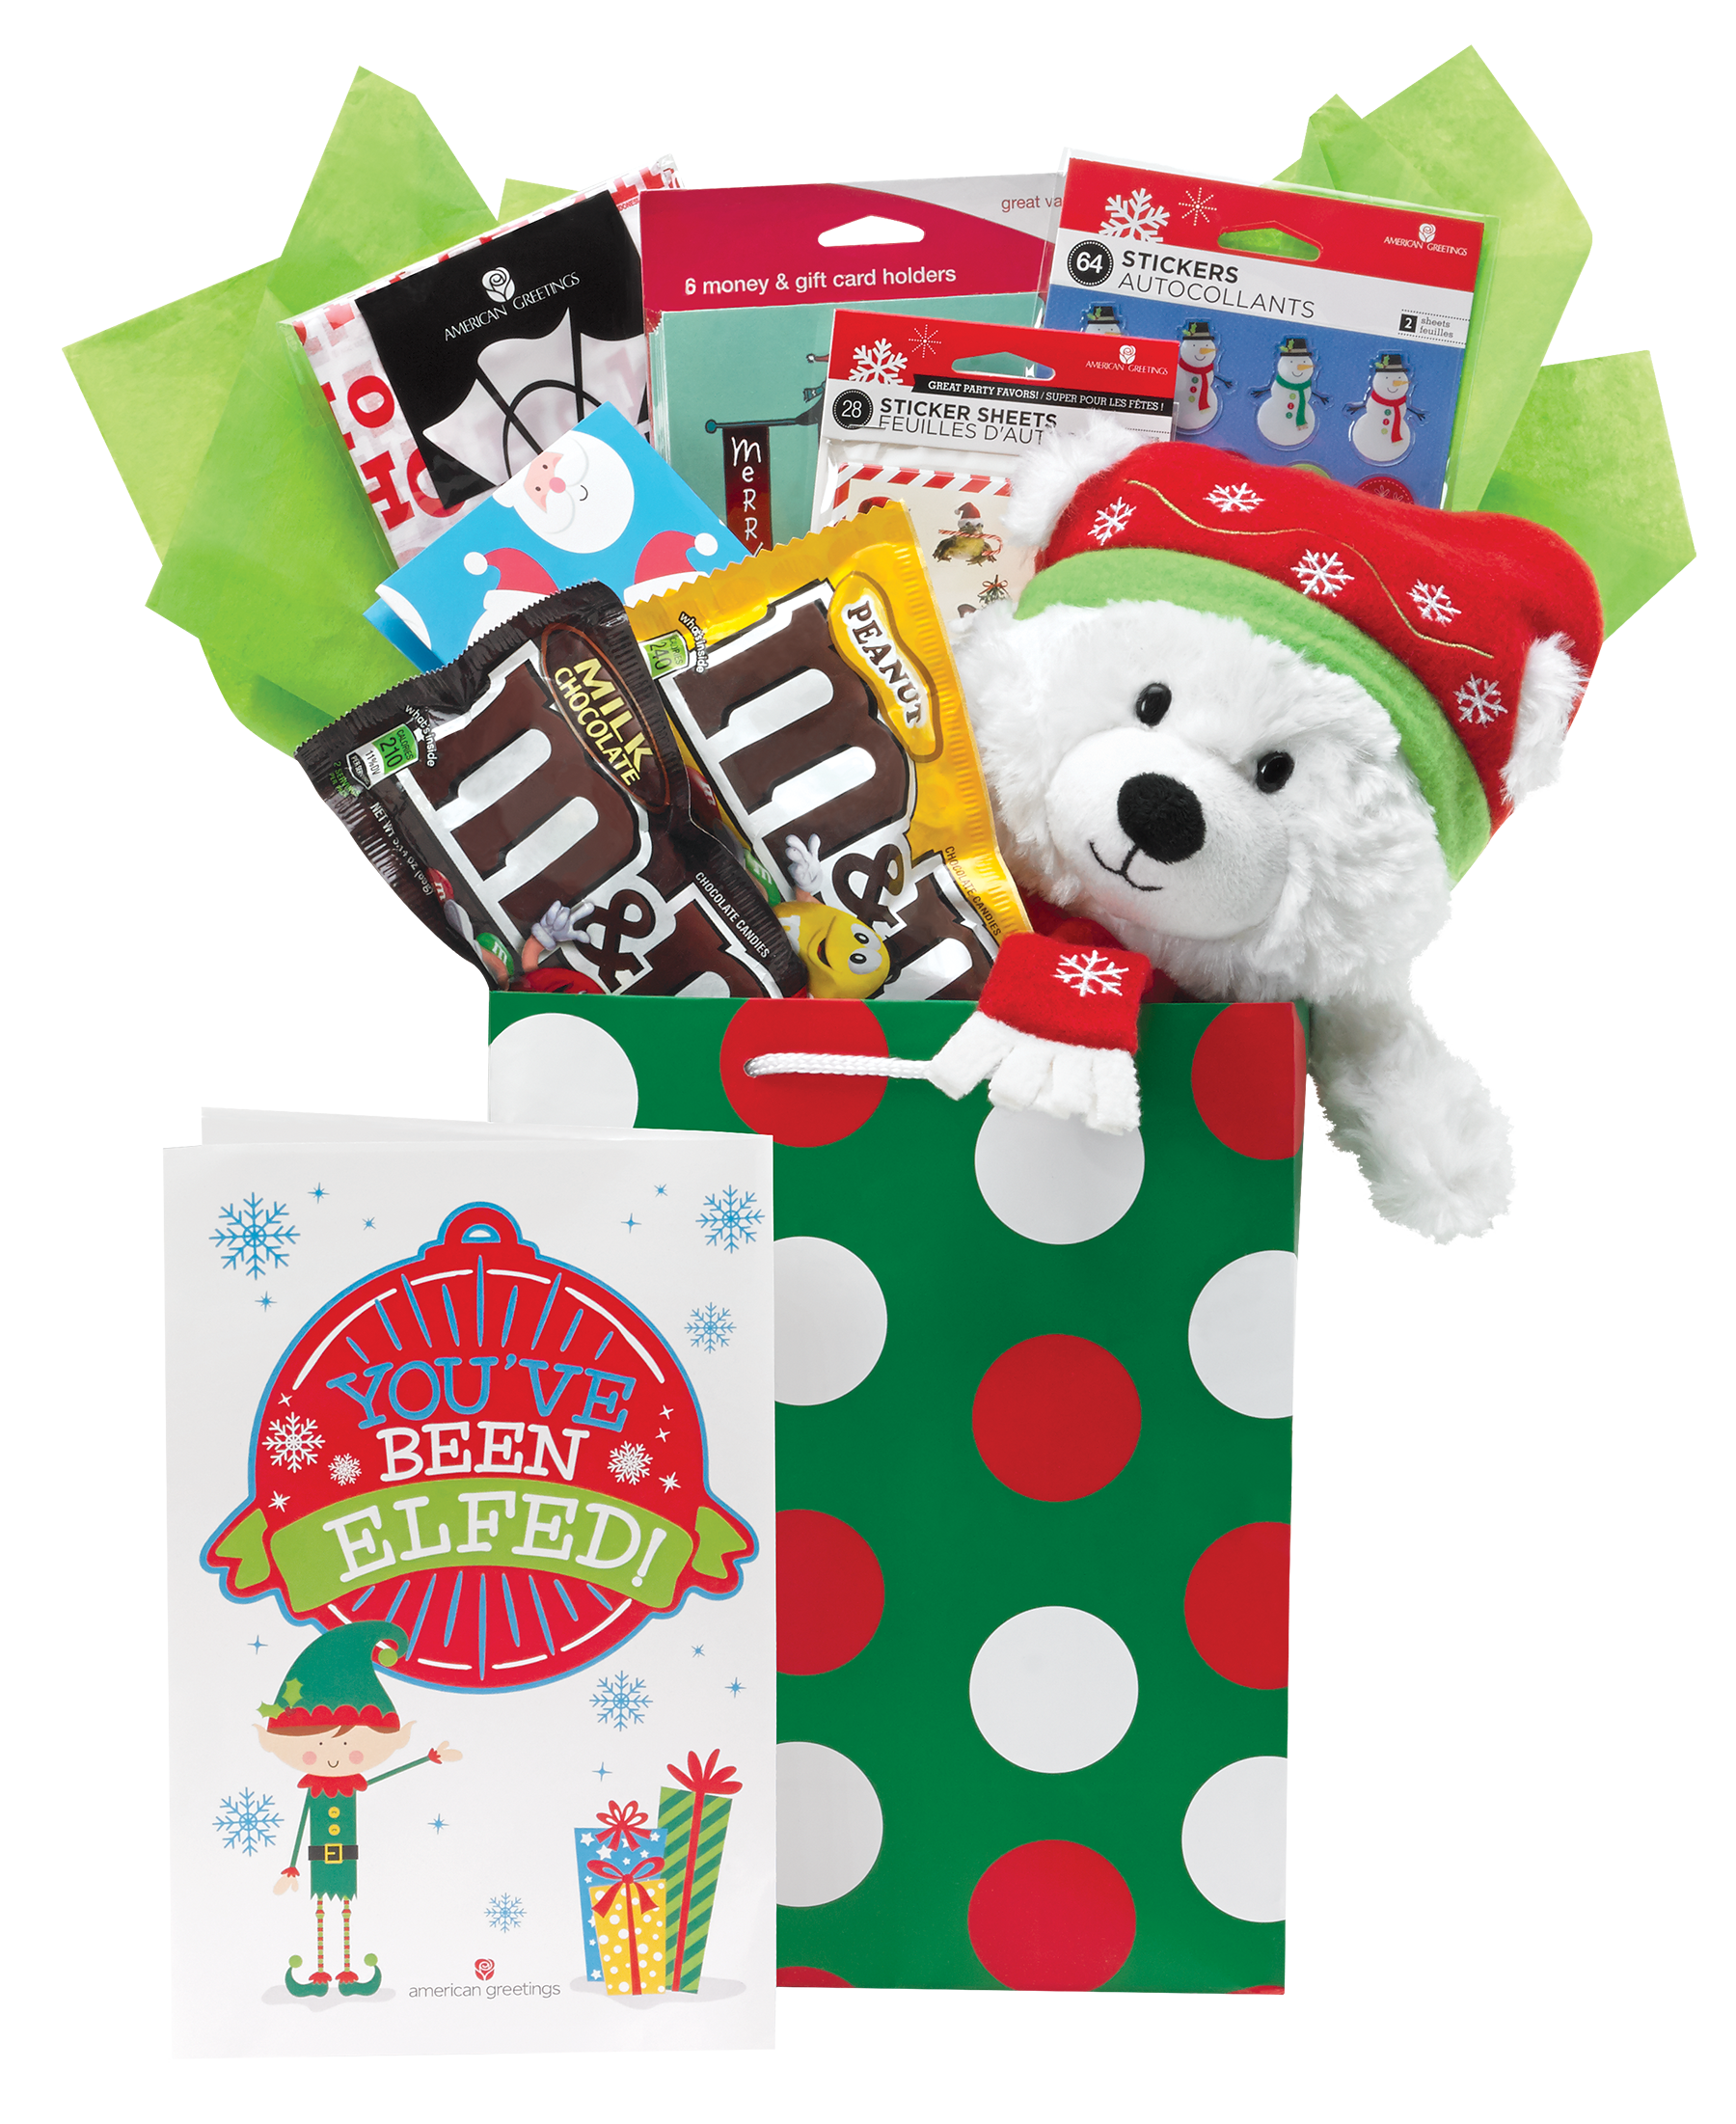 Youve Been Elfed Archives American Greetings Blog